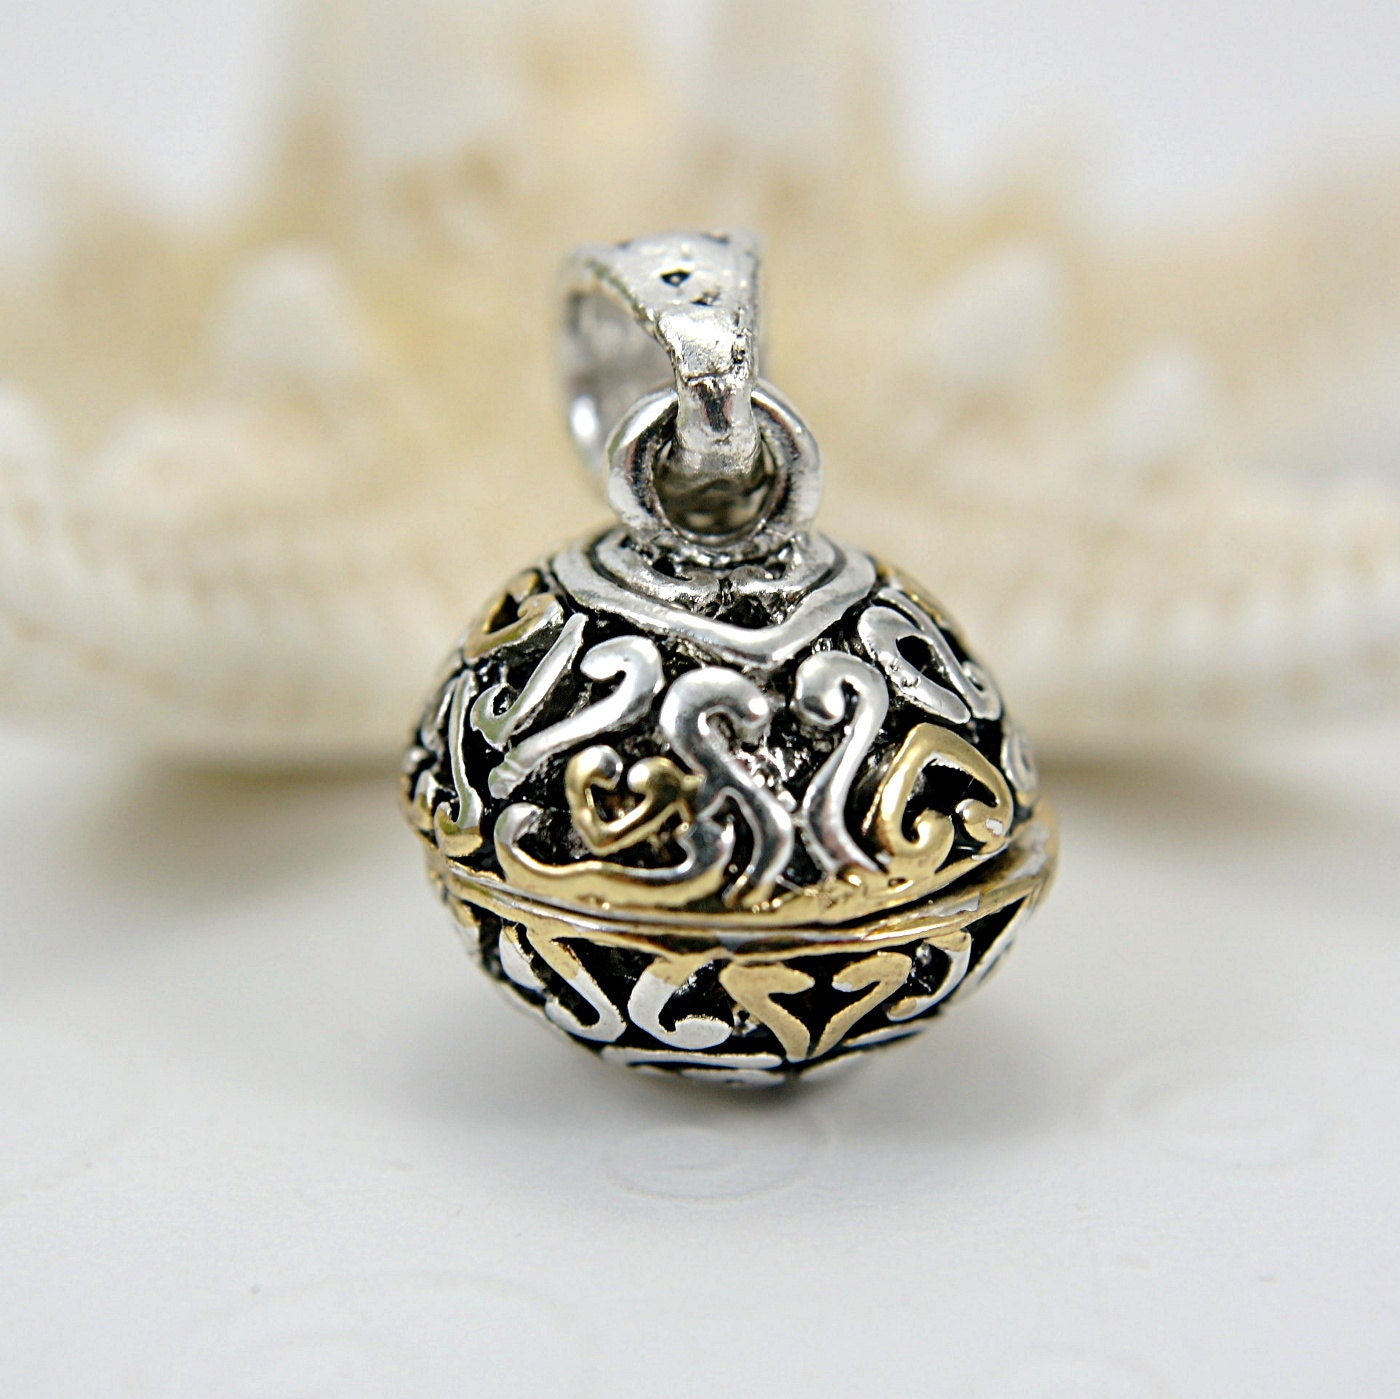 Prayer box sphere pendant ornament filigree silver gold tone - SueRunyonDesigns